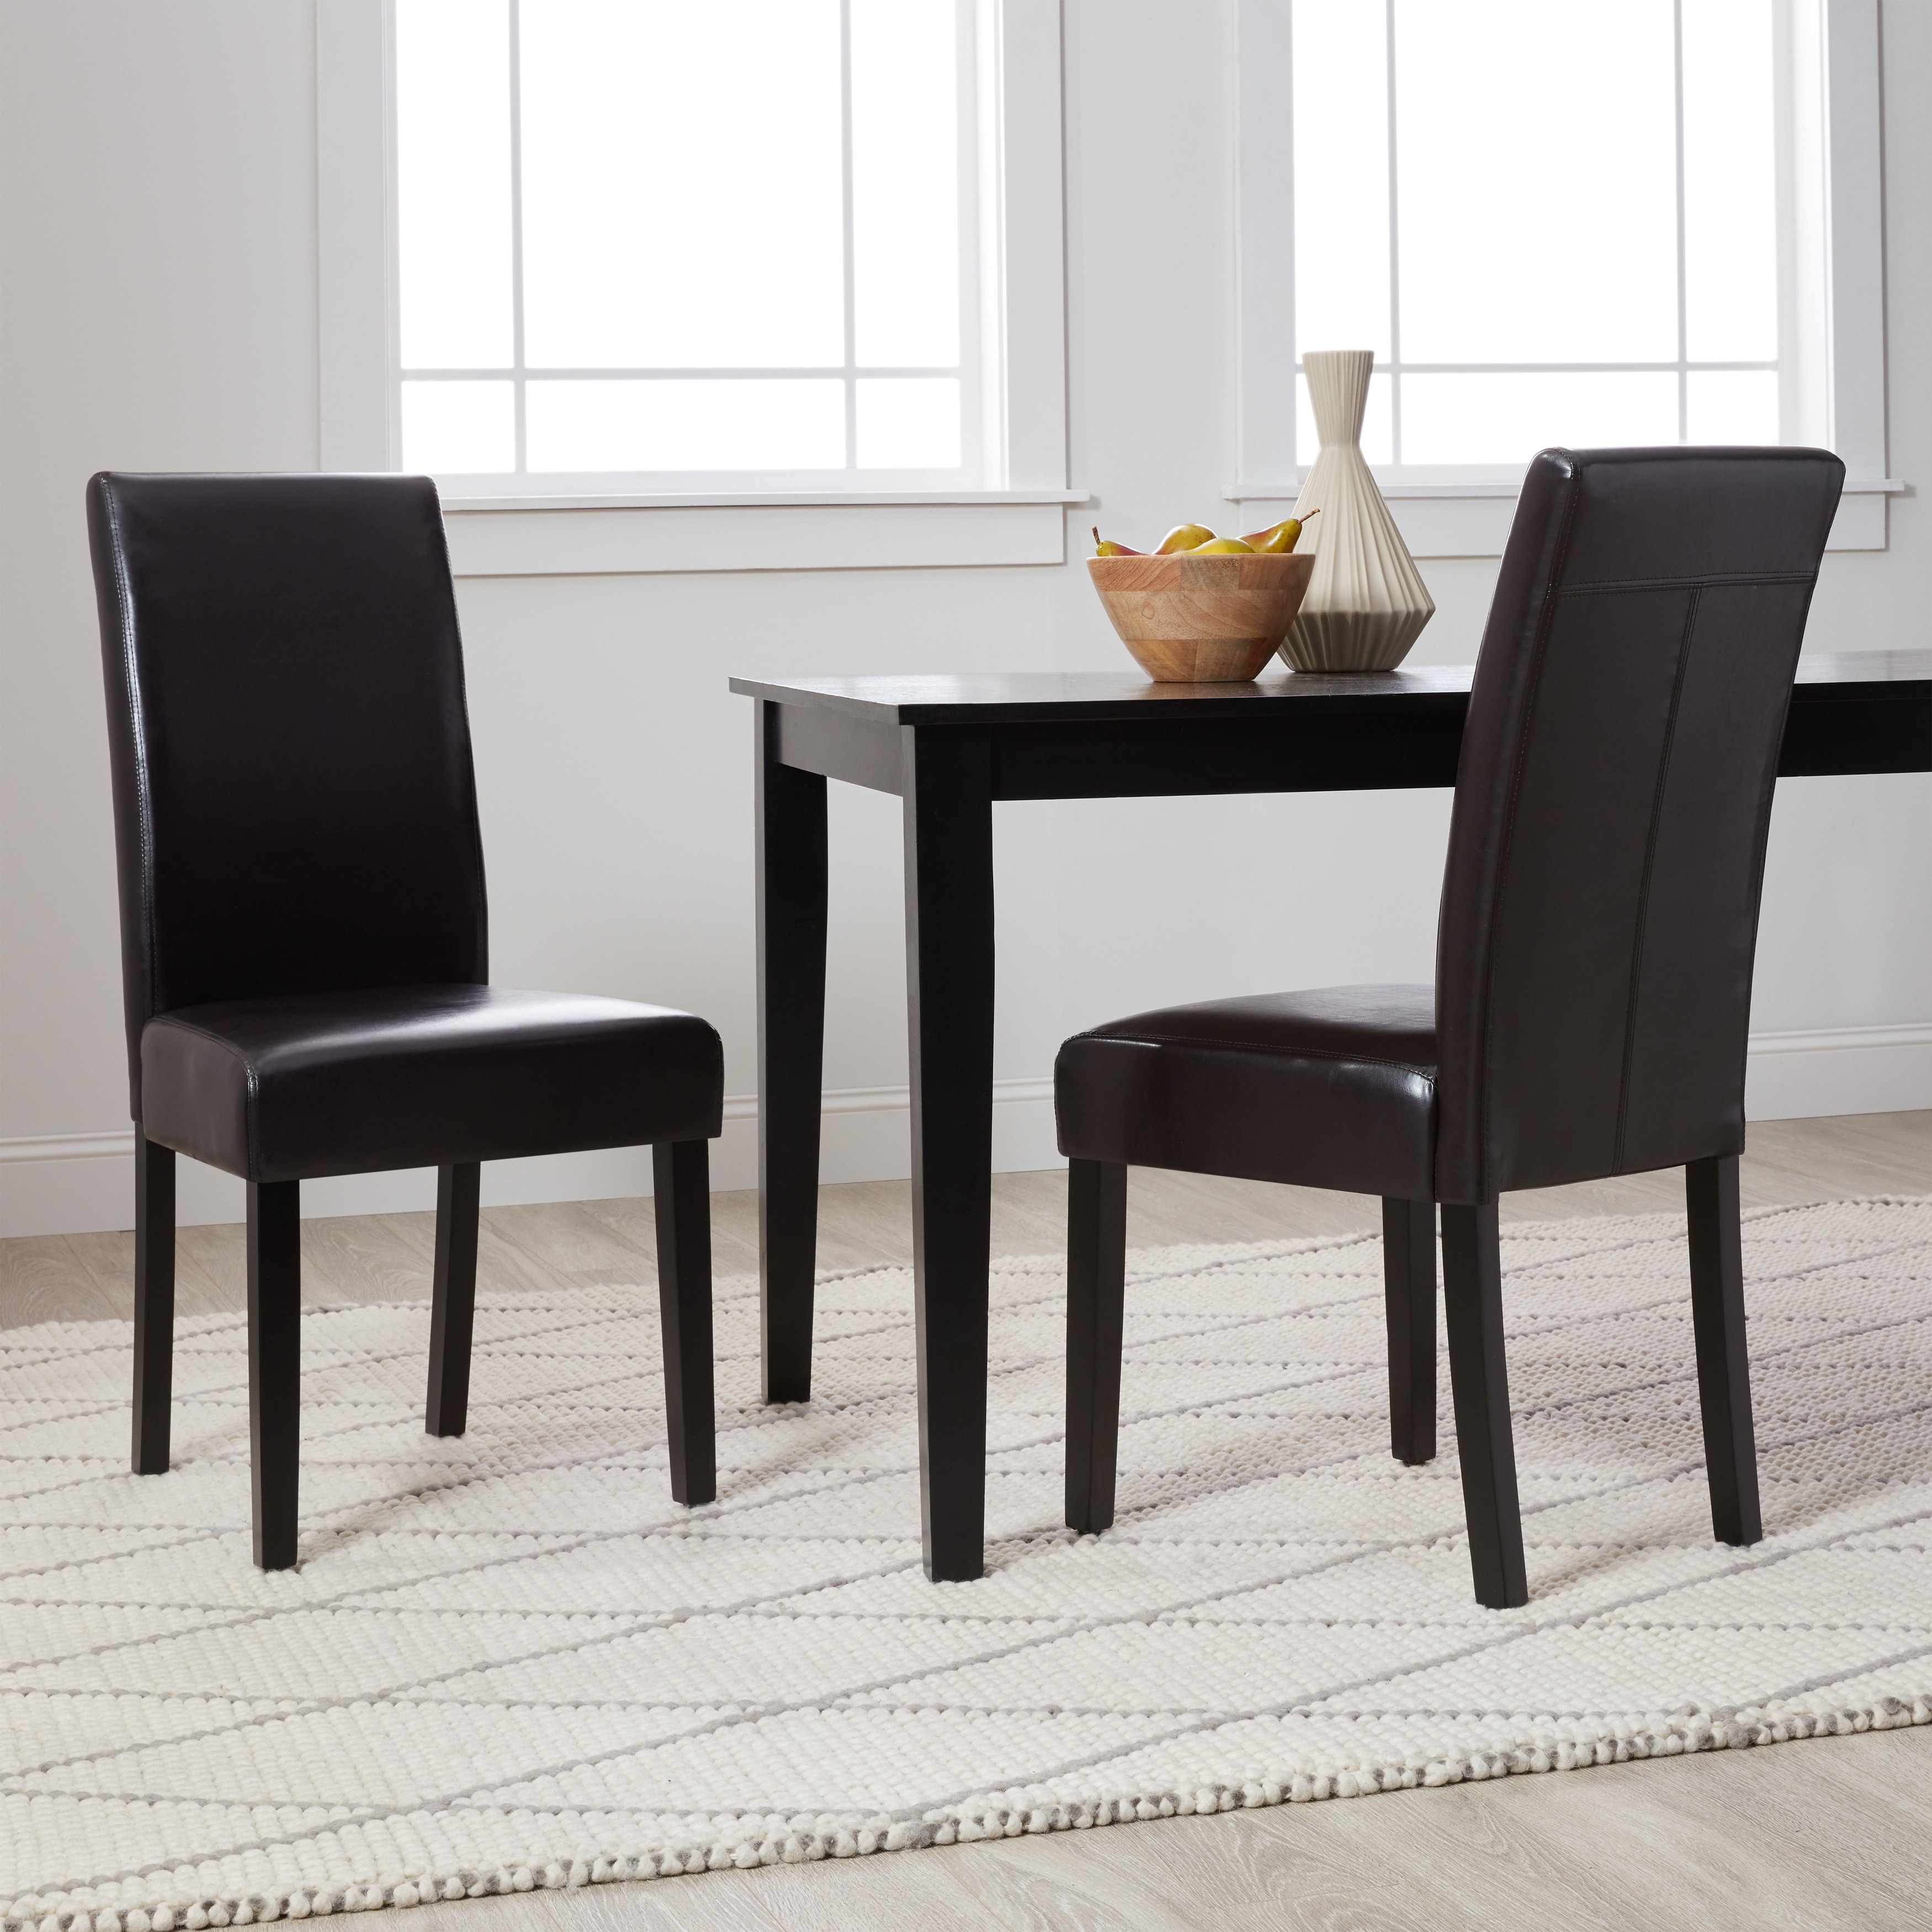 Modern Contemporary Kitchen Dining Room Chairs